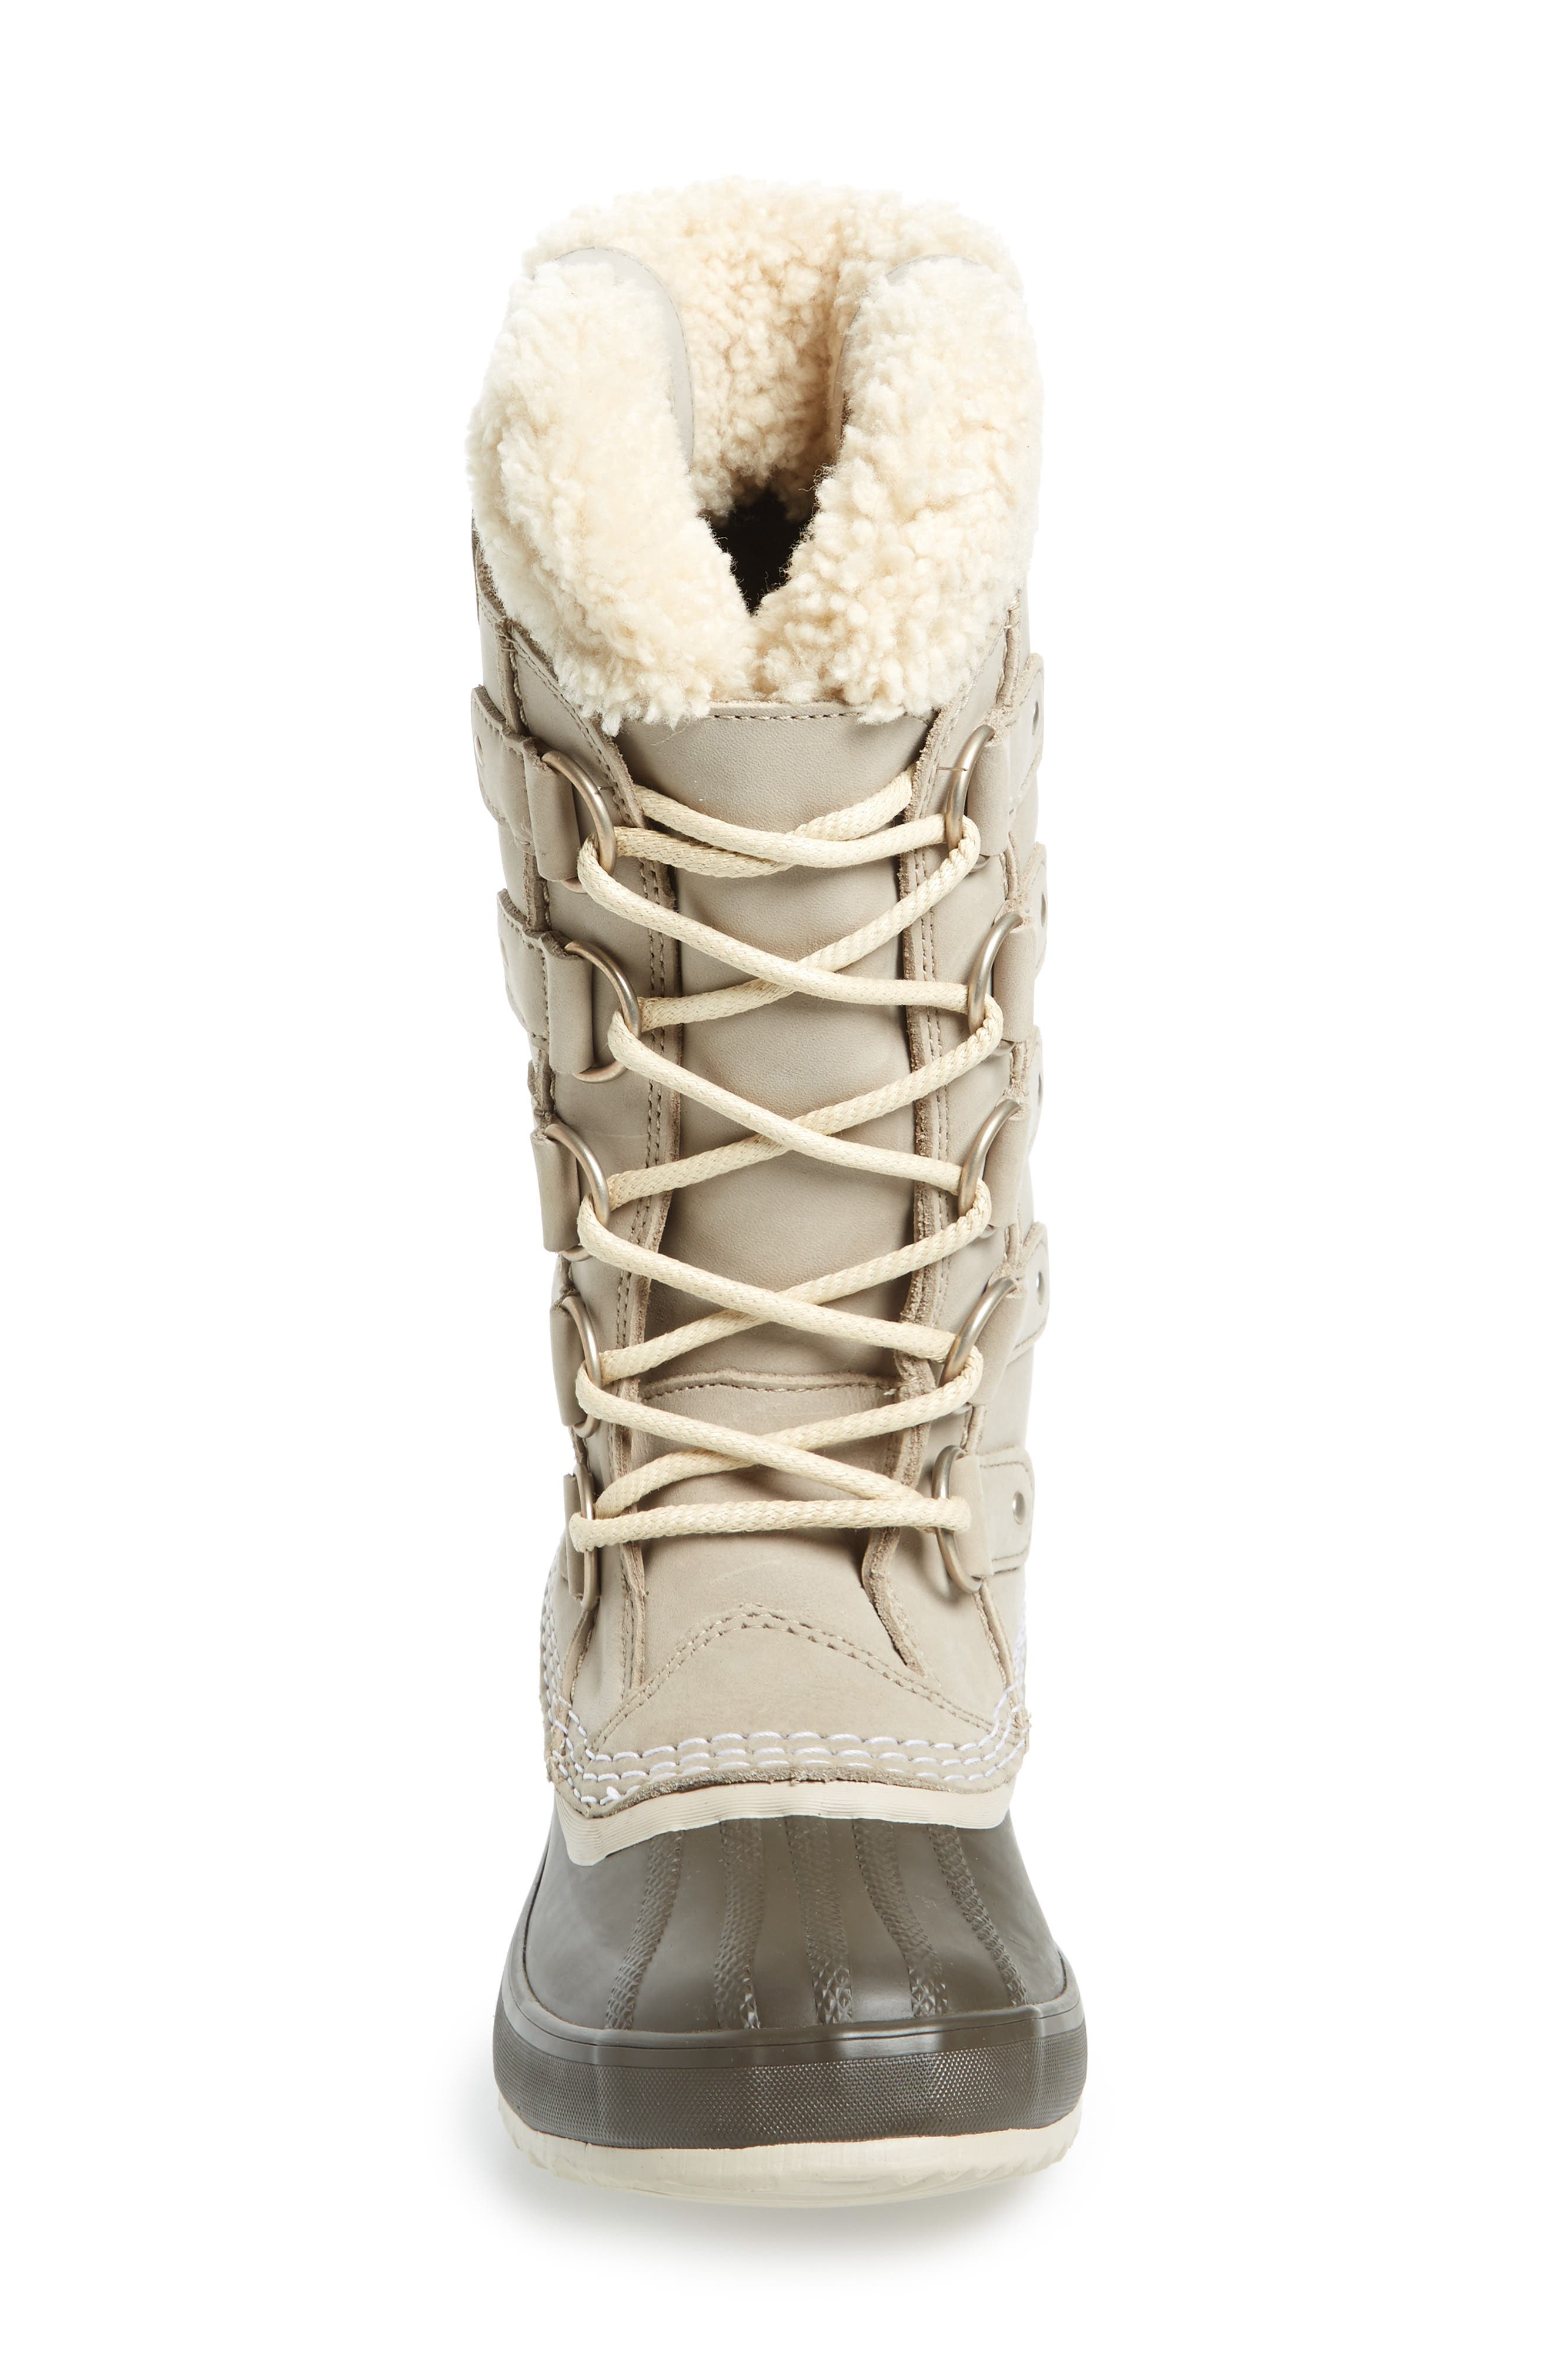 Joan of Arctic<sup>™</sup> Lux Waterproof Winter Boot with Genuine  Shearling Cuff,                             Alternate thumbnail 4, color,                             Ancient Fossil/ Mud